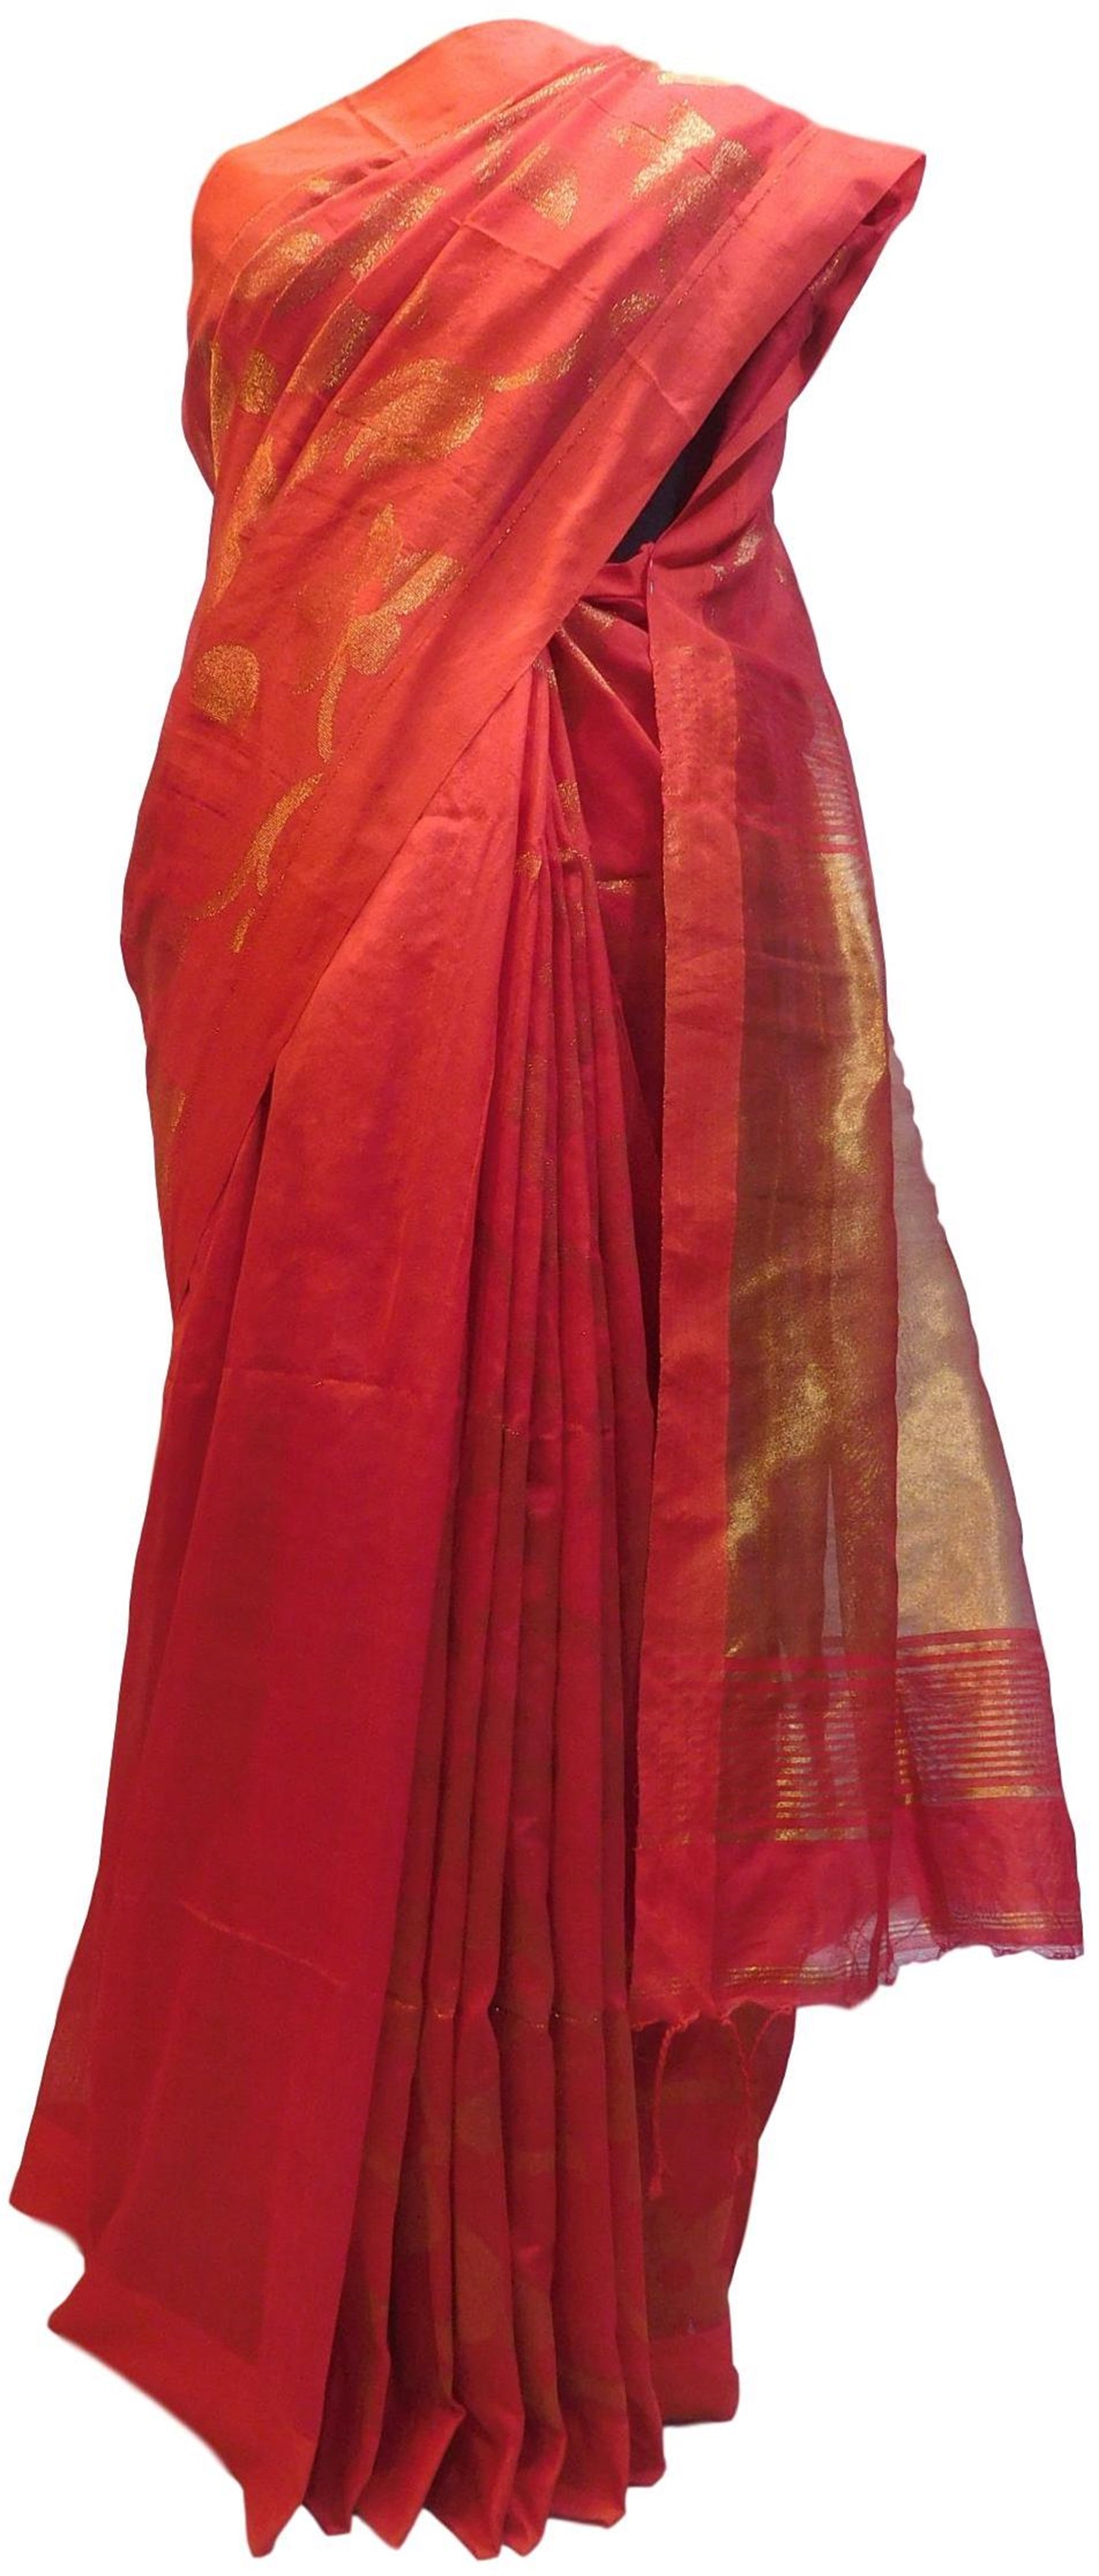 Red Designer Wedding Partywear Pure Handloom Bengal Bangali Cotton Kolkata Saree Sari E126